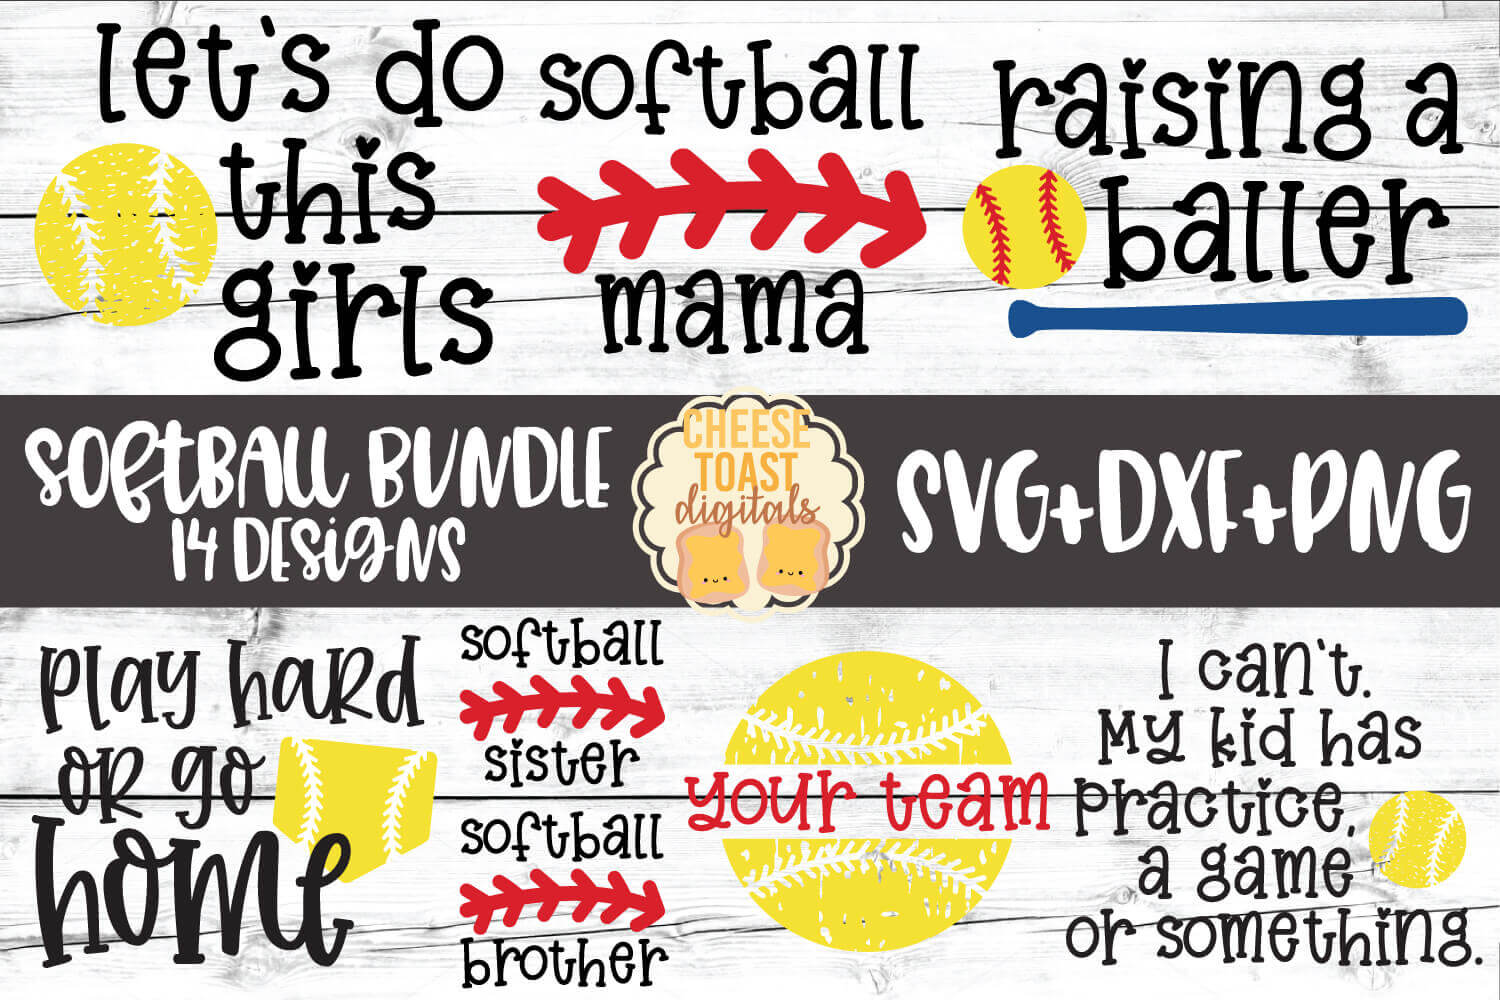 Download Free Softball Bundle 14 Designs Graphic By Cheesetoastdigitals for Cricut Explore, Silhouette and other cutting machines.